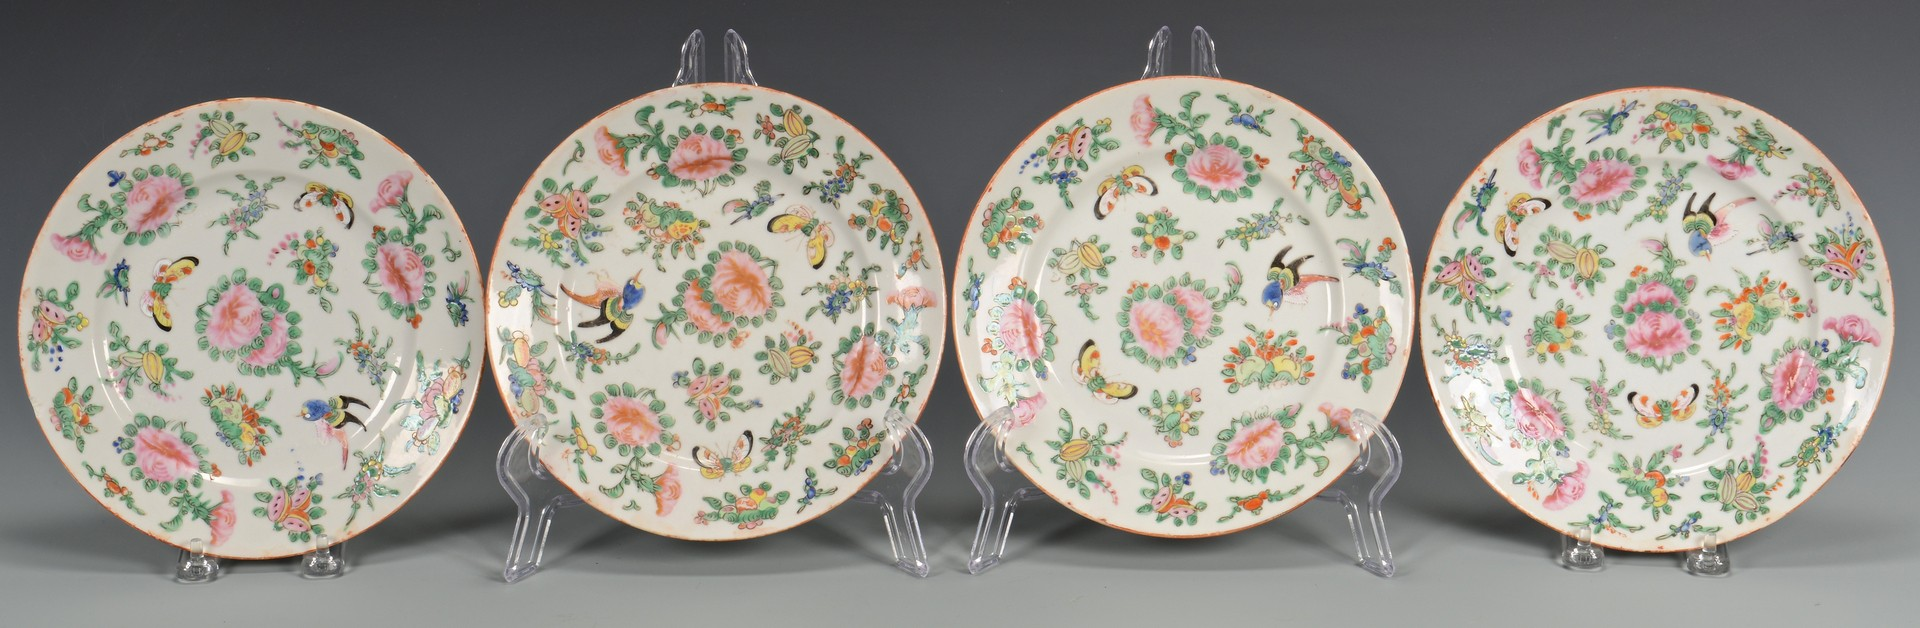 Lot 3832421: 8 Famille Rose Butterfly Plates & 3 Mugs